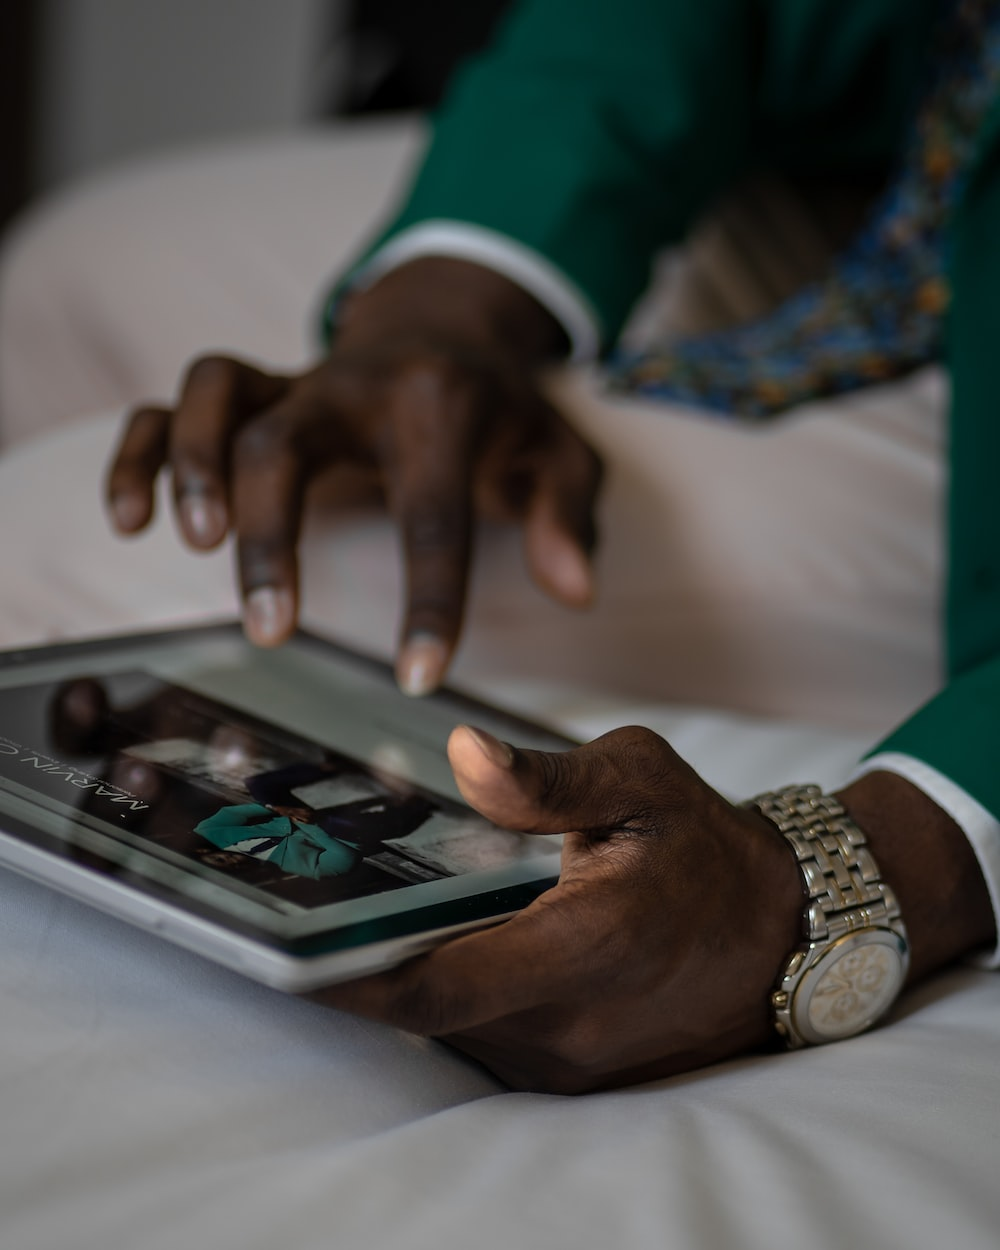 person holding a tablet close-up photography